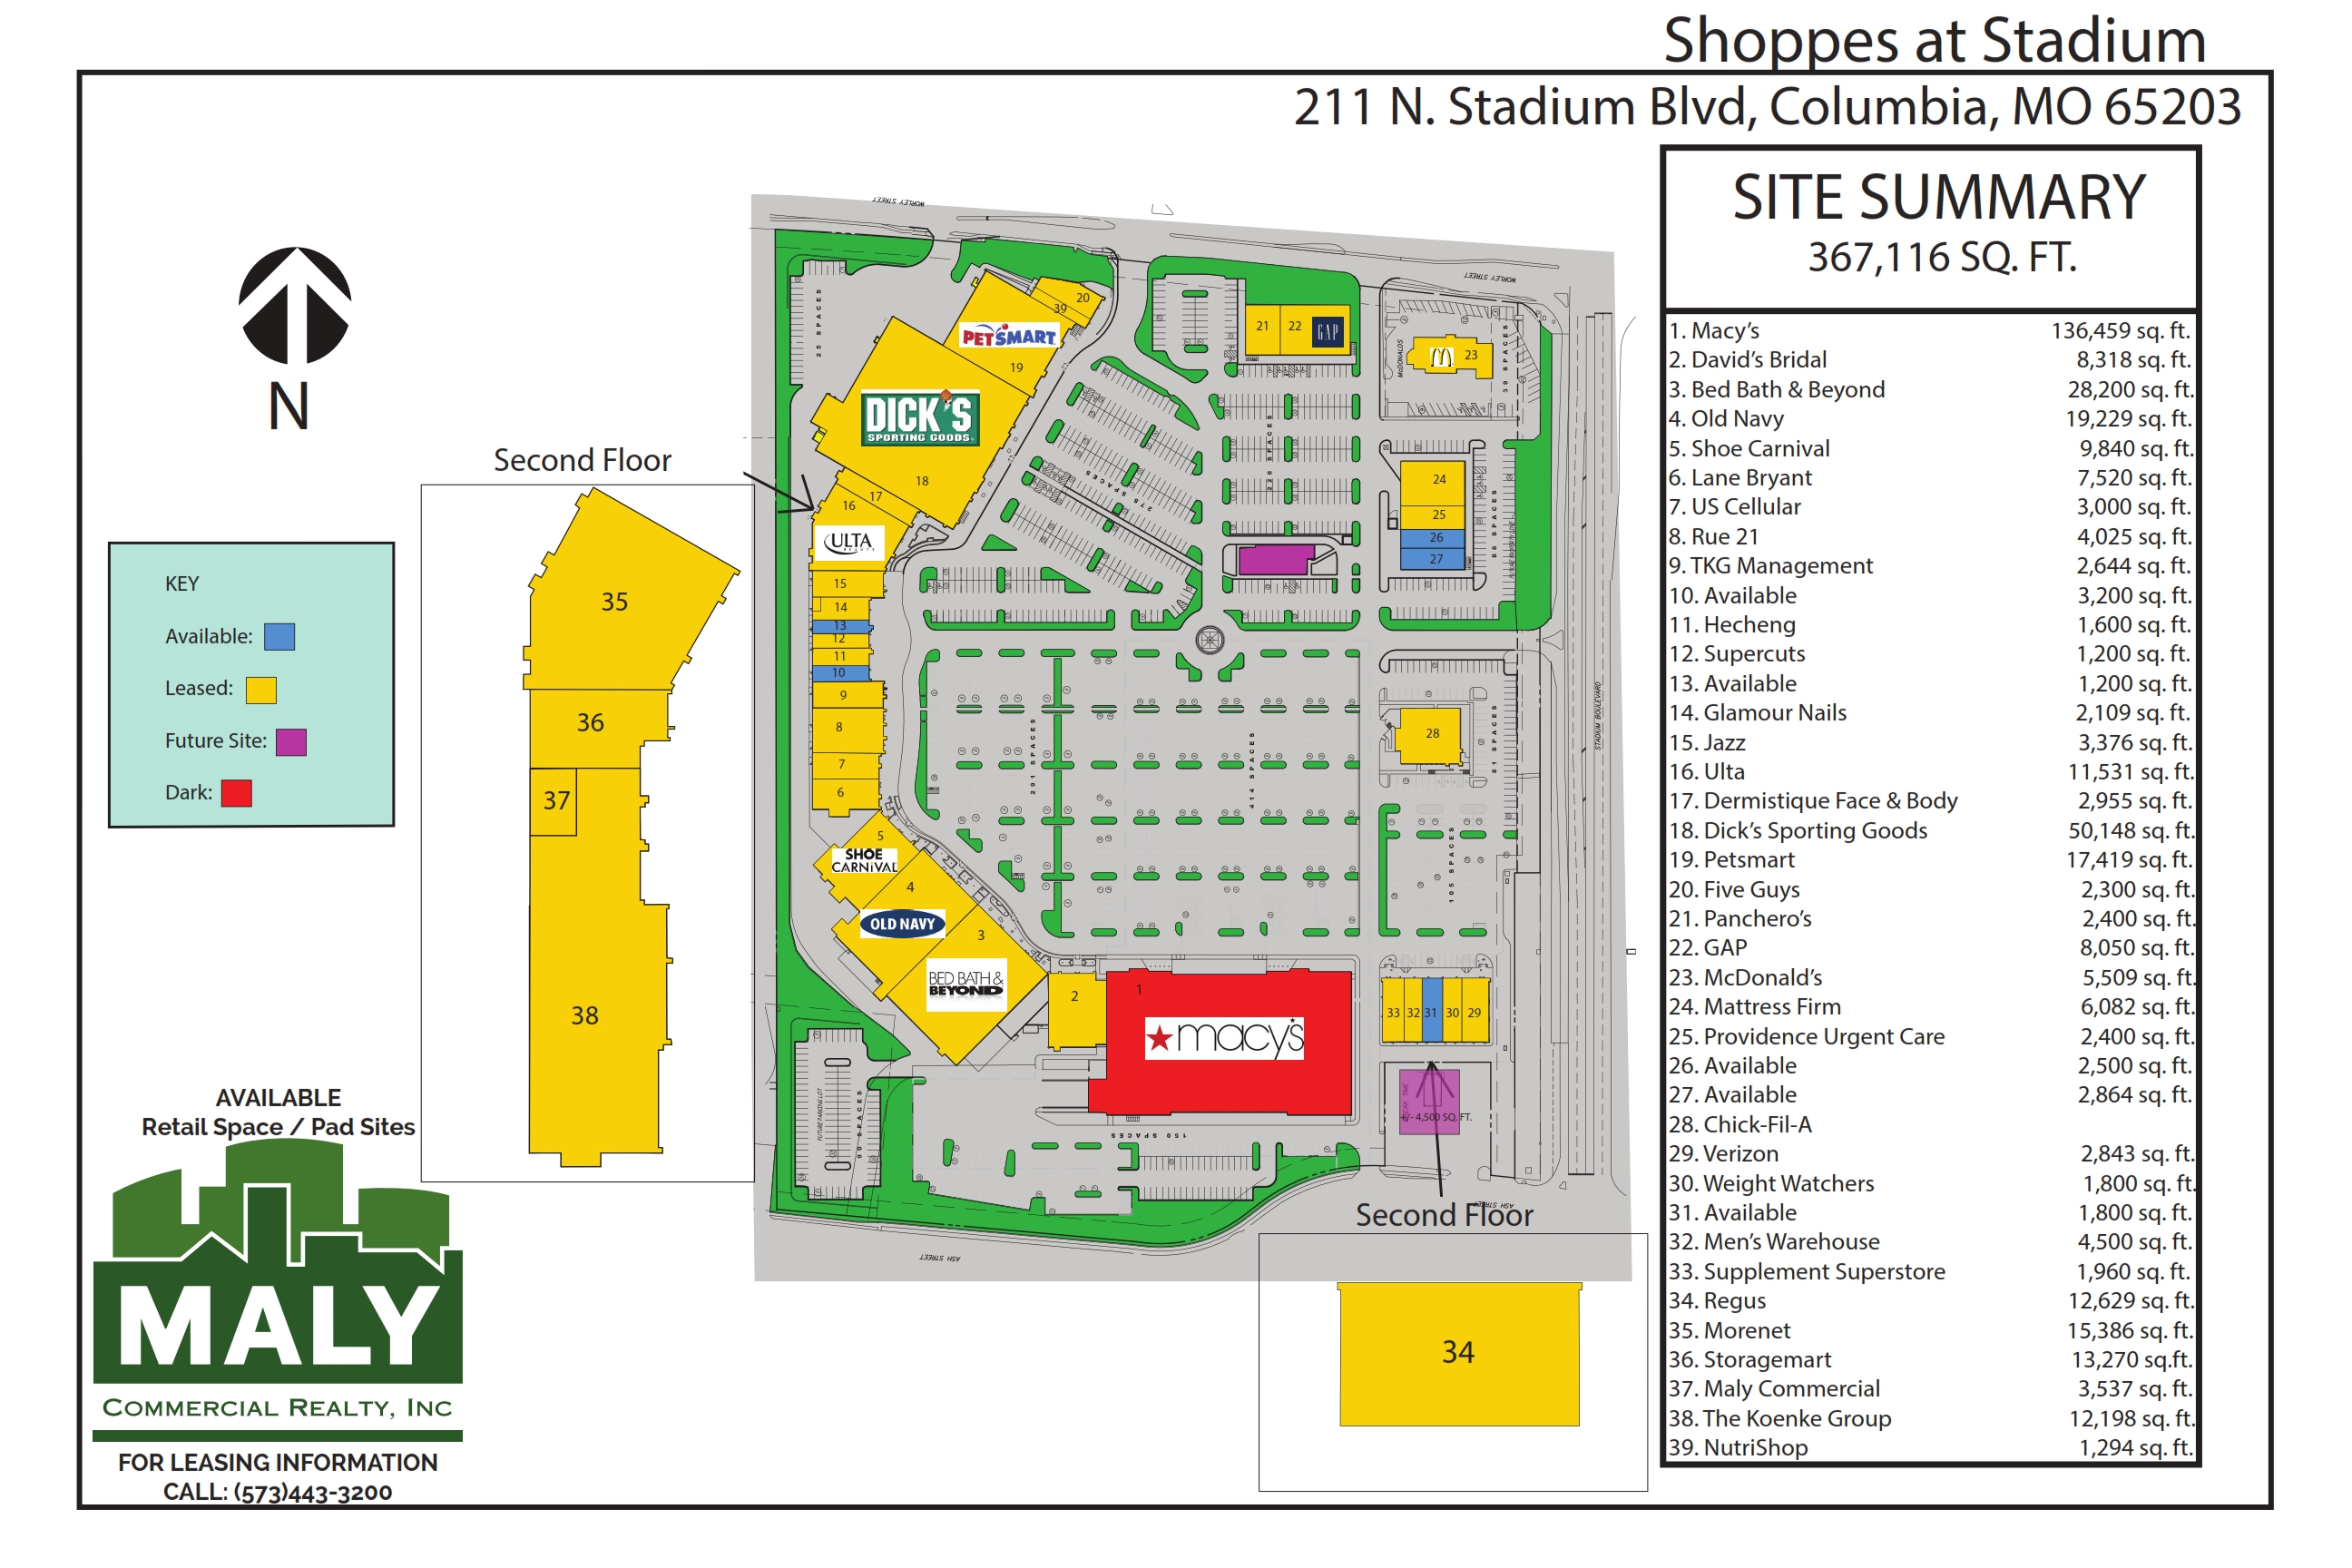 Shoppes at Stadium – Unit 10